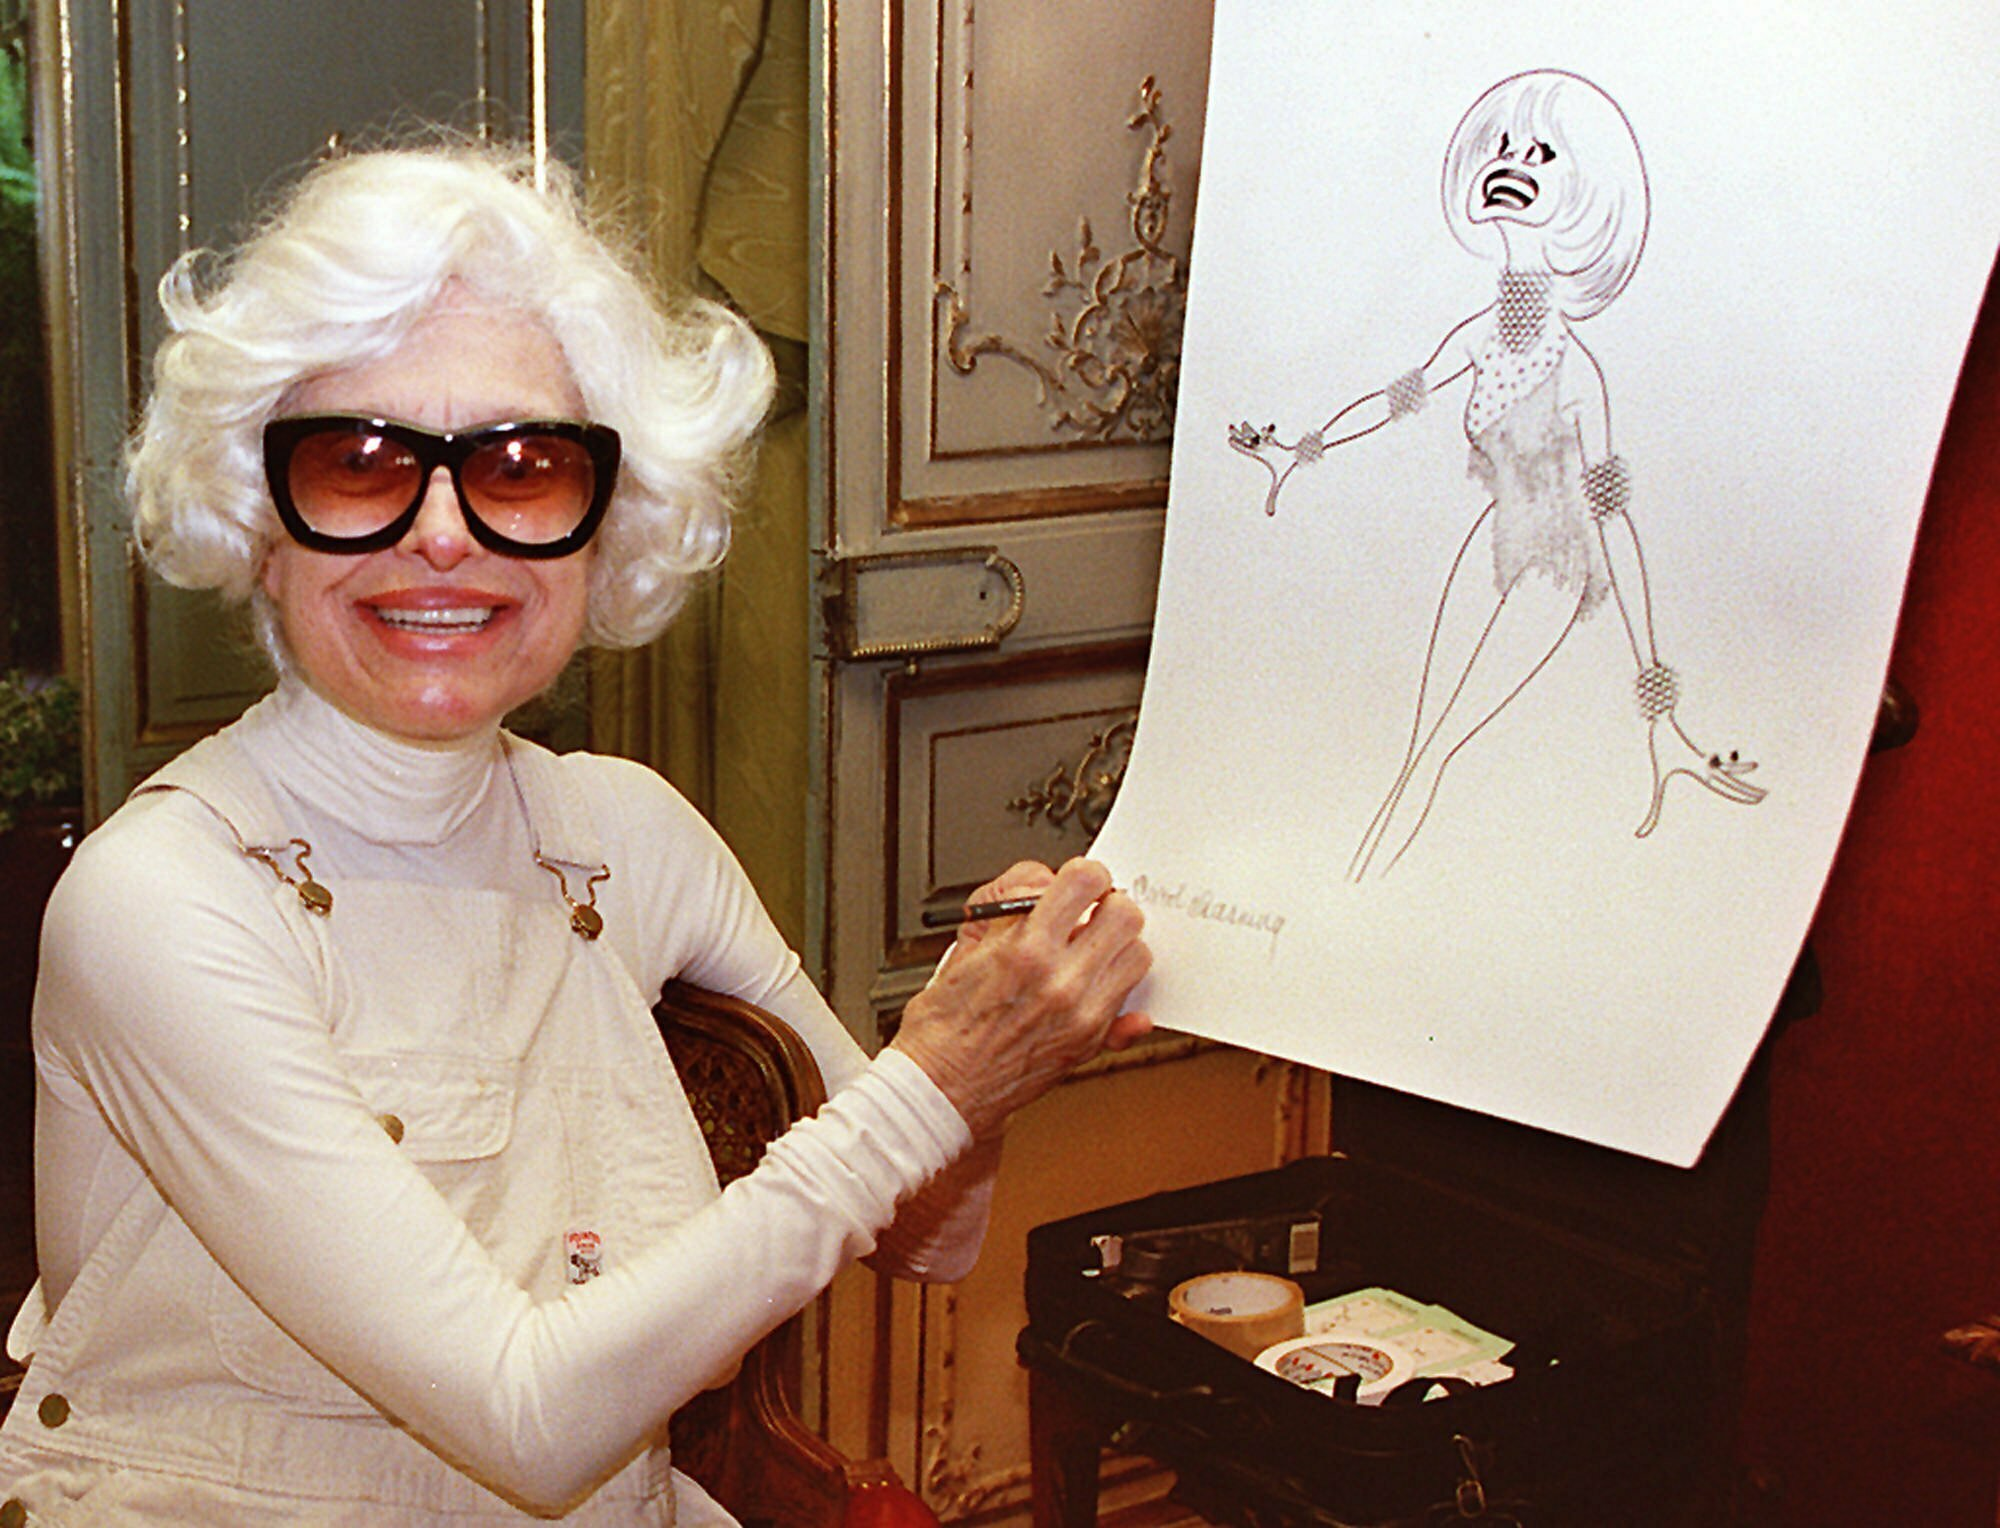 FILE - In this Nov. 1, 1997 file photo, actress Carol Channing hand-signs a lithograph of herself by caricaturist Al Hirschfeld at her home in Beverly Hills, Calif.  Channing, whose career spanned decades on Broadway and on television has died at age 97. Publicist B. Harlan Boll says Channing died of natural causes early Tuesday, Jan. 15, 2019 in Rancho Mirage, Calif. (AP Photo/Damian Dovarganes, File)